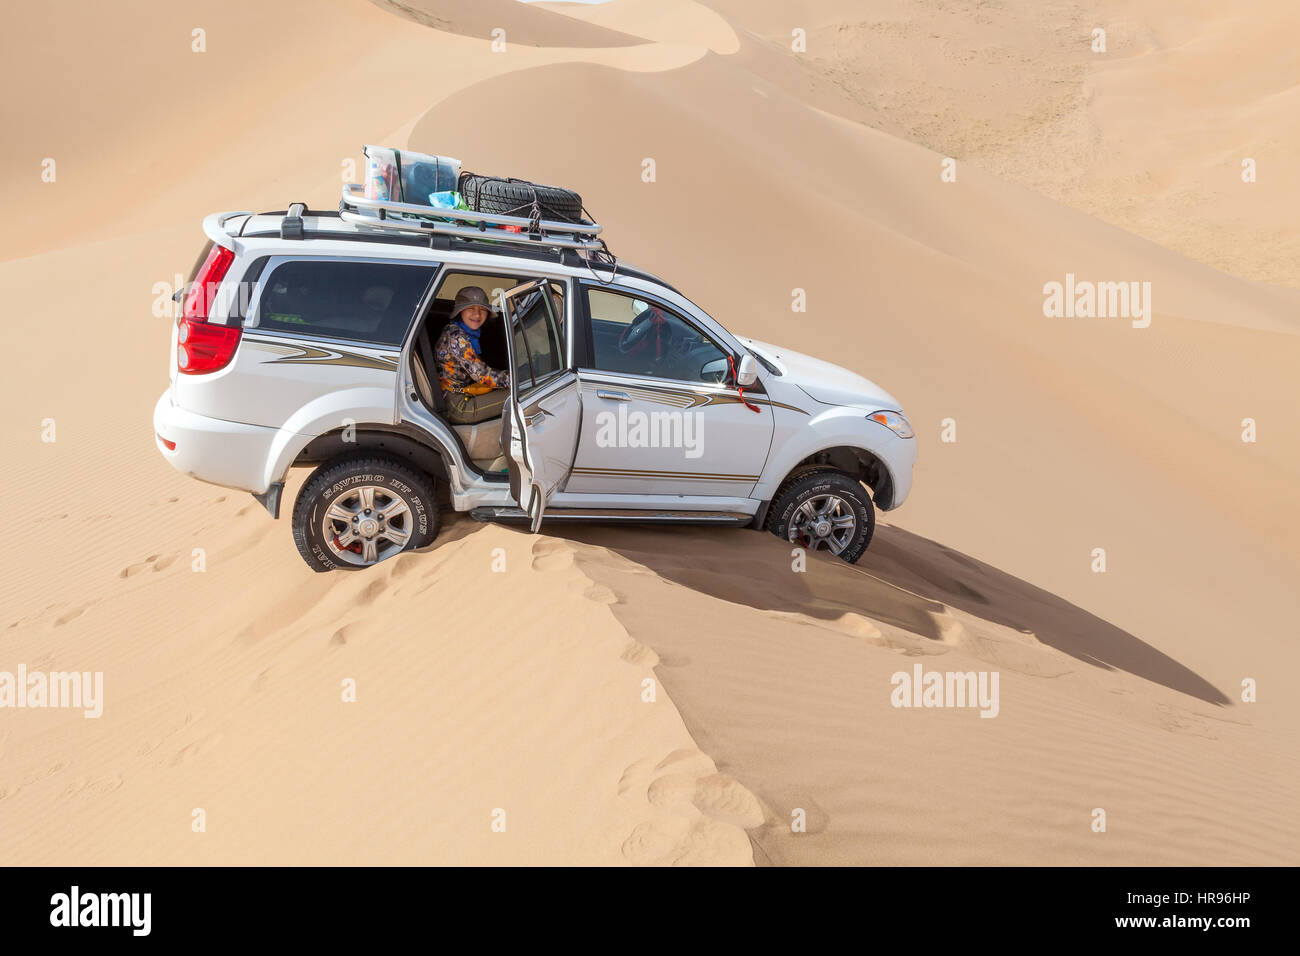 Jeep stuck on a sand dune in Badain Jaran Desert, Inner Mongolia, China. Stock Photo